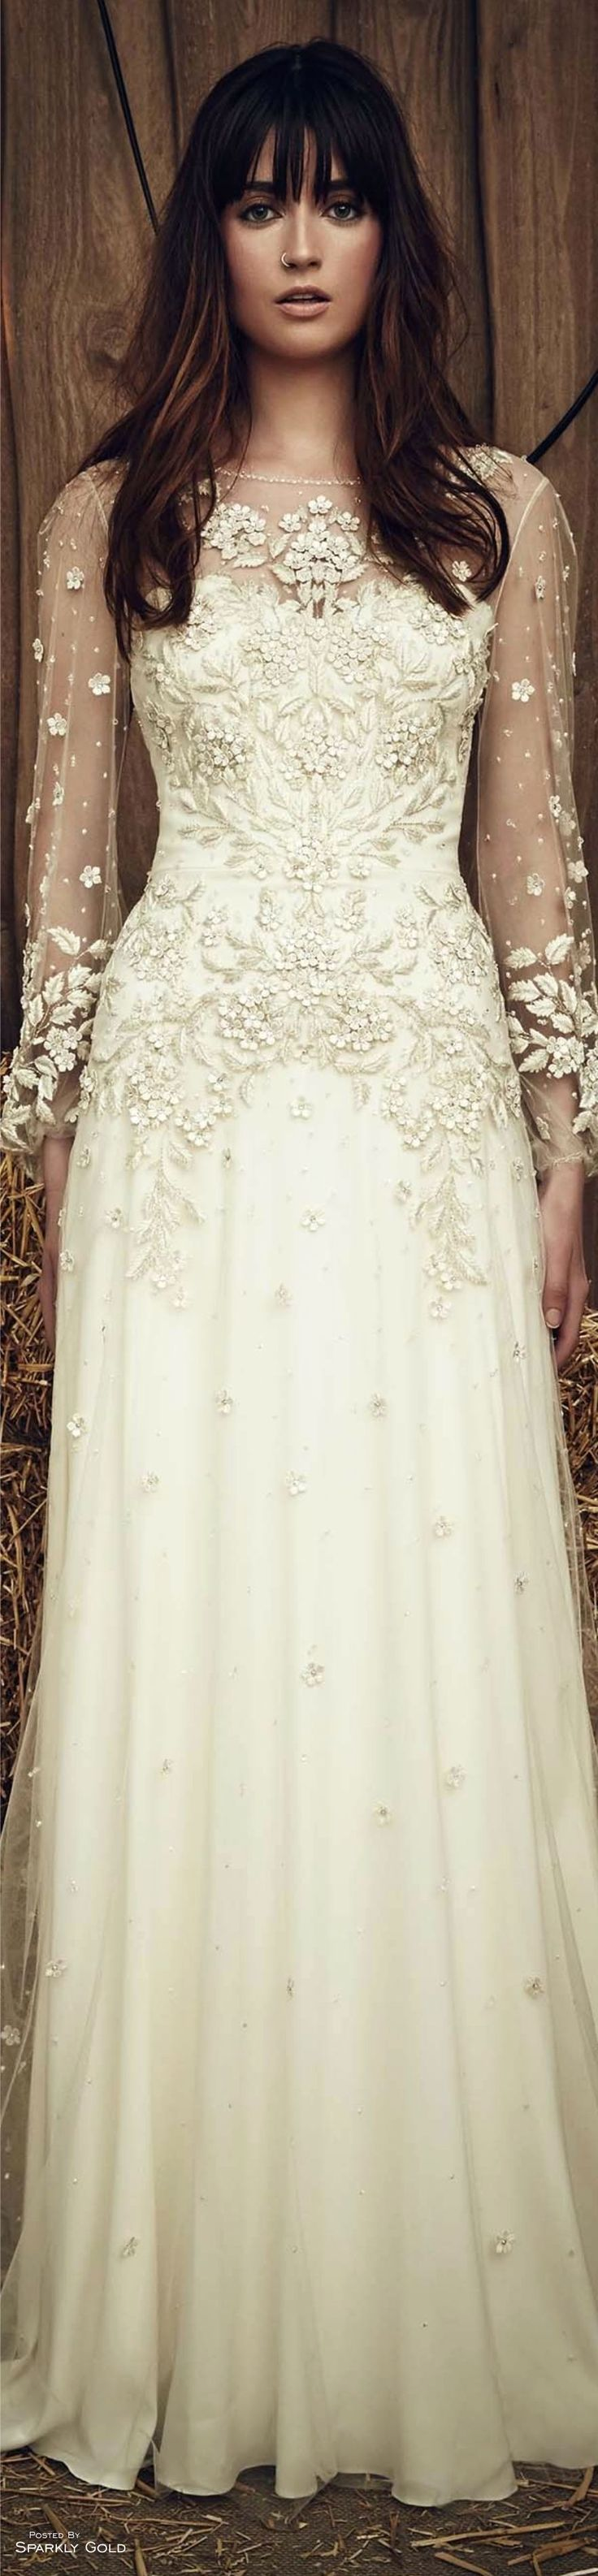 Jenny Packham Spring 2017 Bridal  - Pin curated by http://www.thedailyfashioninspiration.com/